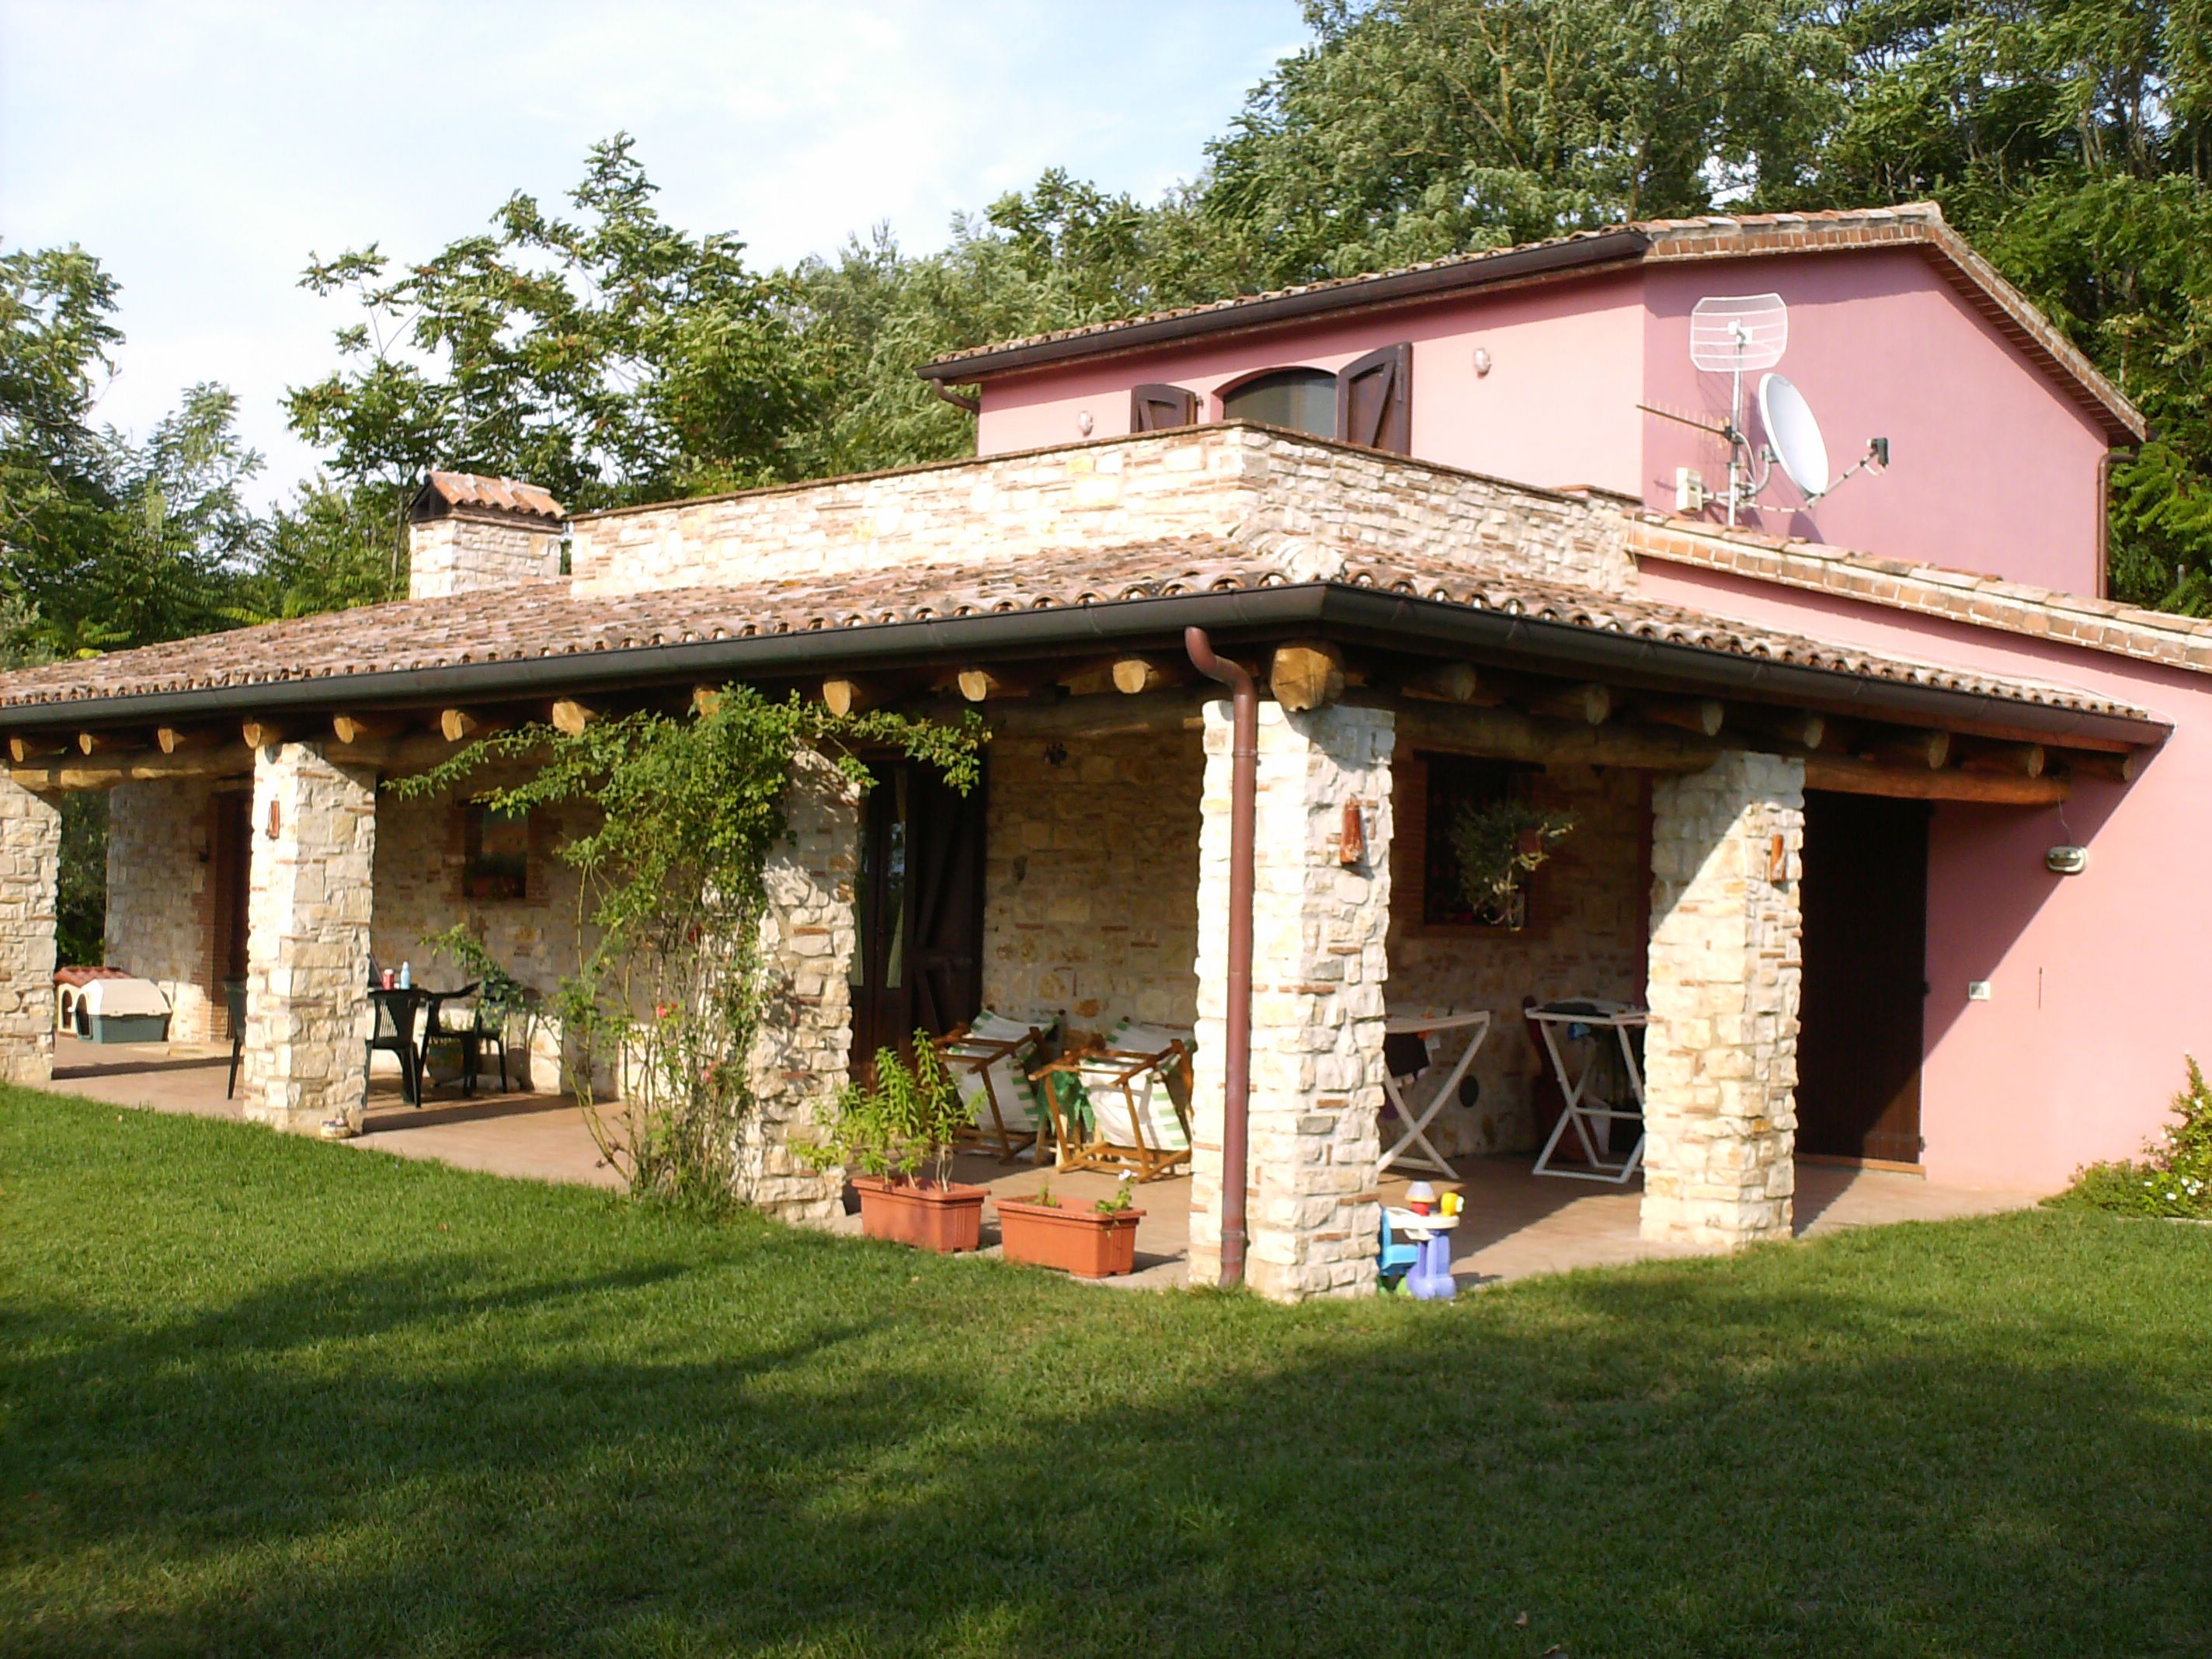 Case di campagna cerca con google e en home cottage for Immagini di case rustiche